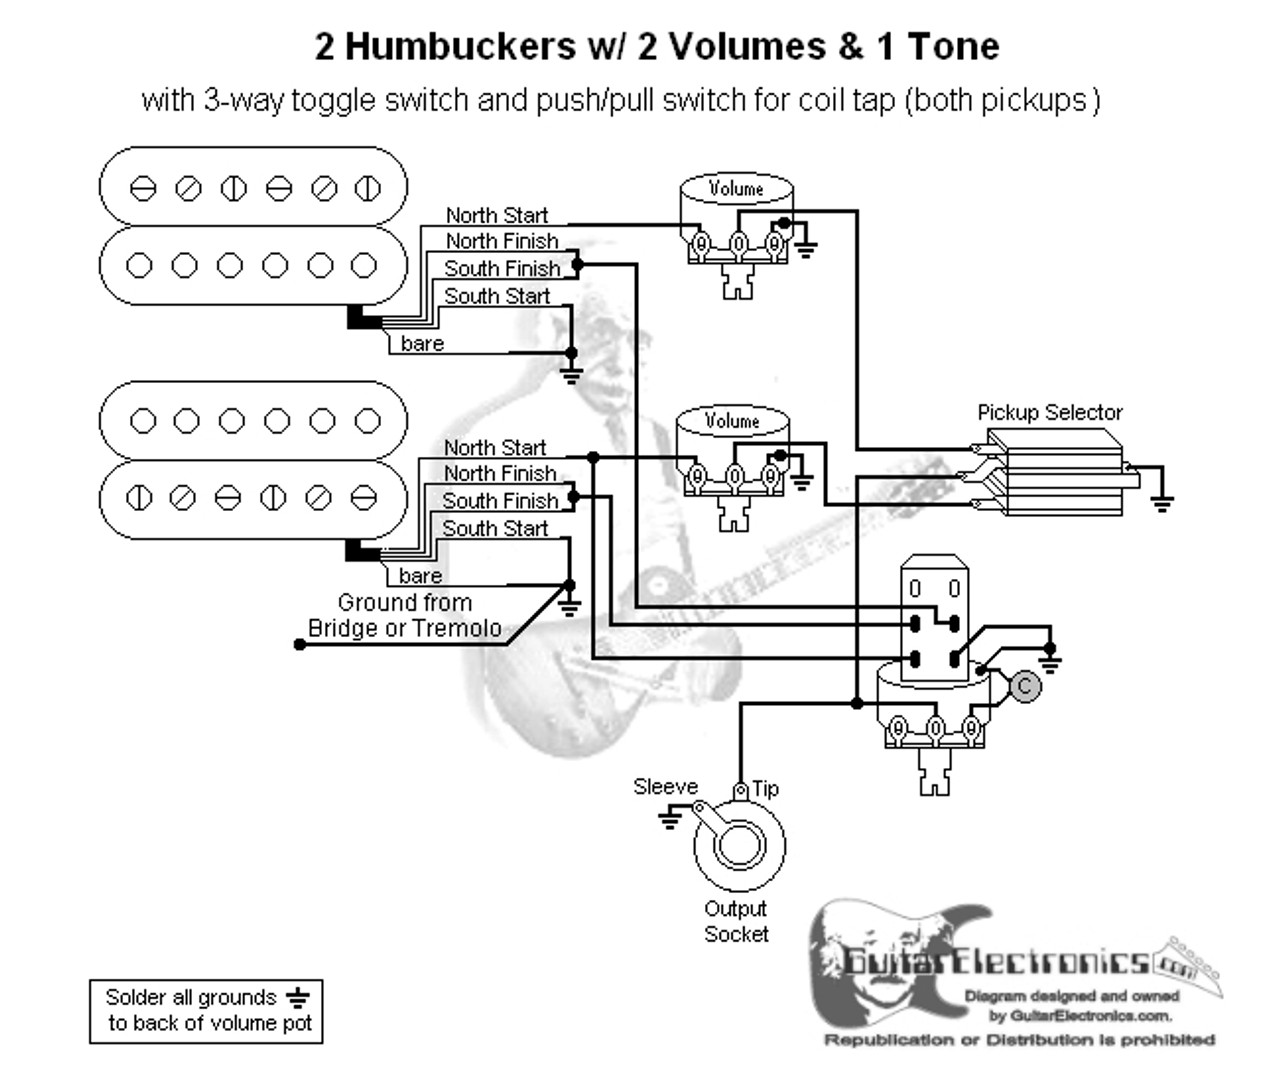 hight resolution of diagram 2 humbuckers 3way toggle switch 2 volumes 1 tone coil tap diagram 2 humbuckers 3 way lever switch 2 volumes 1 tone individual